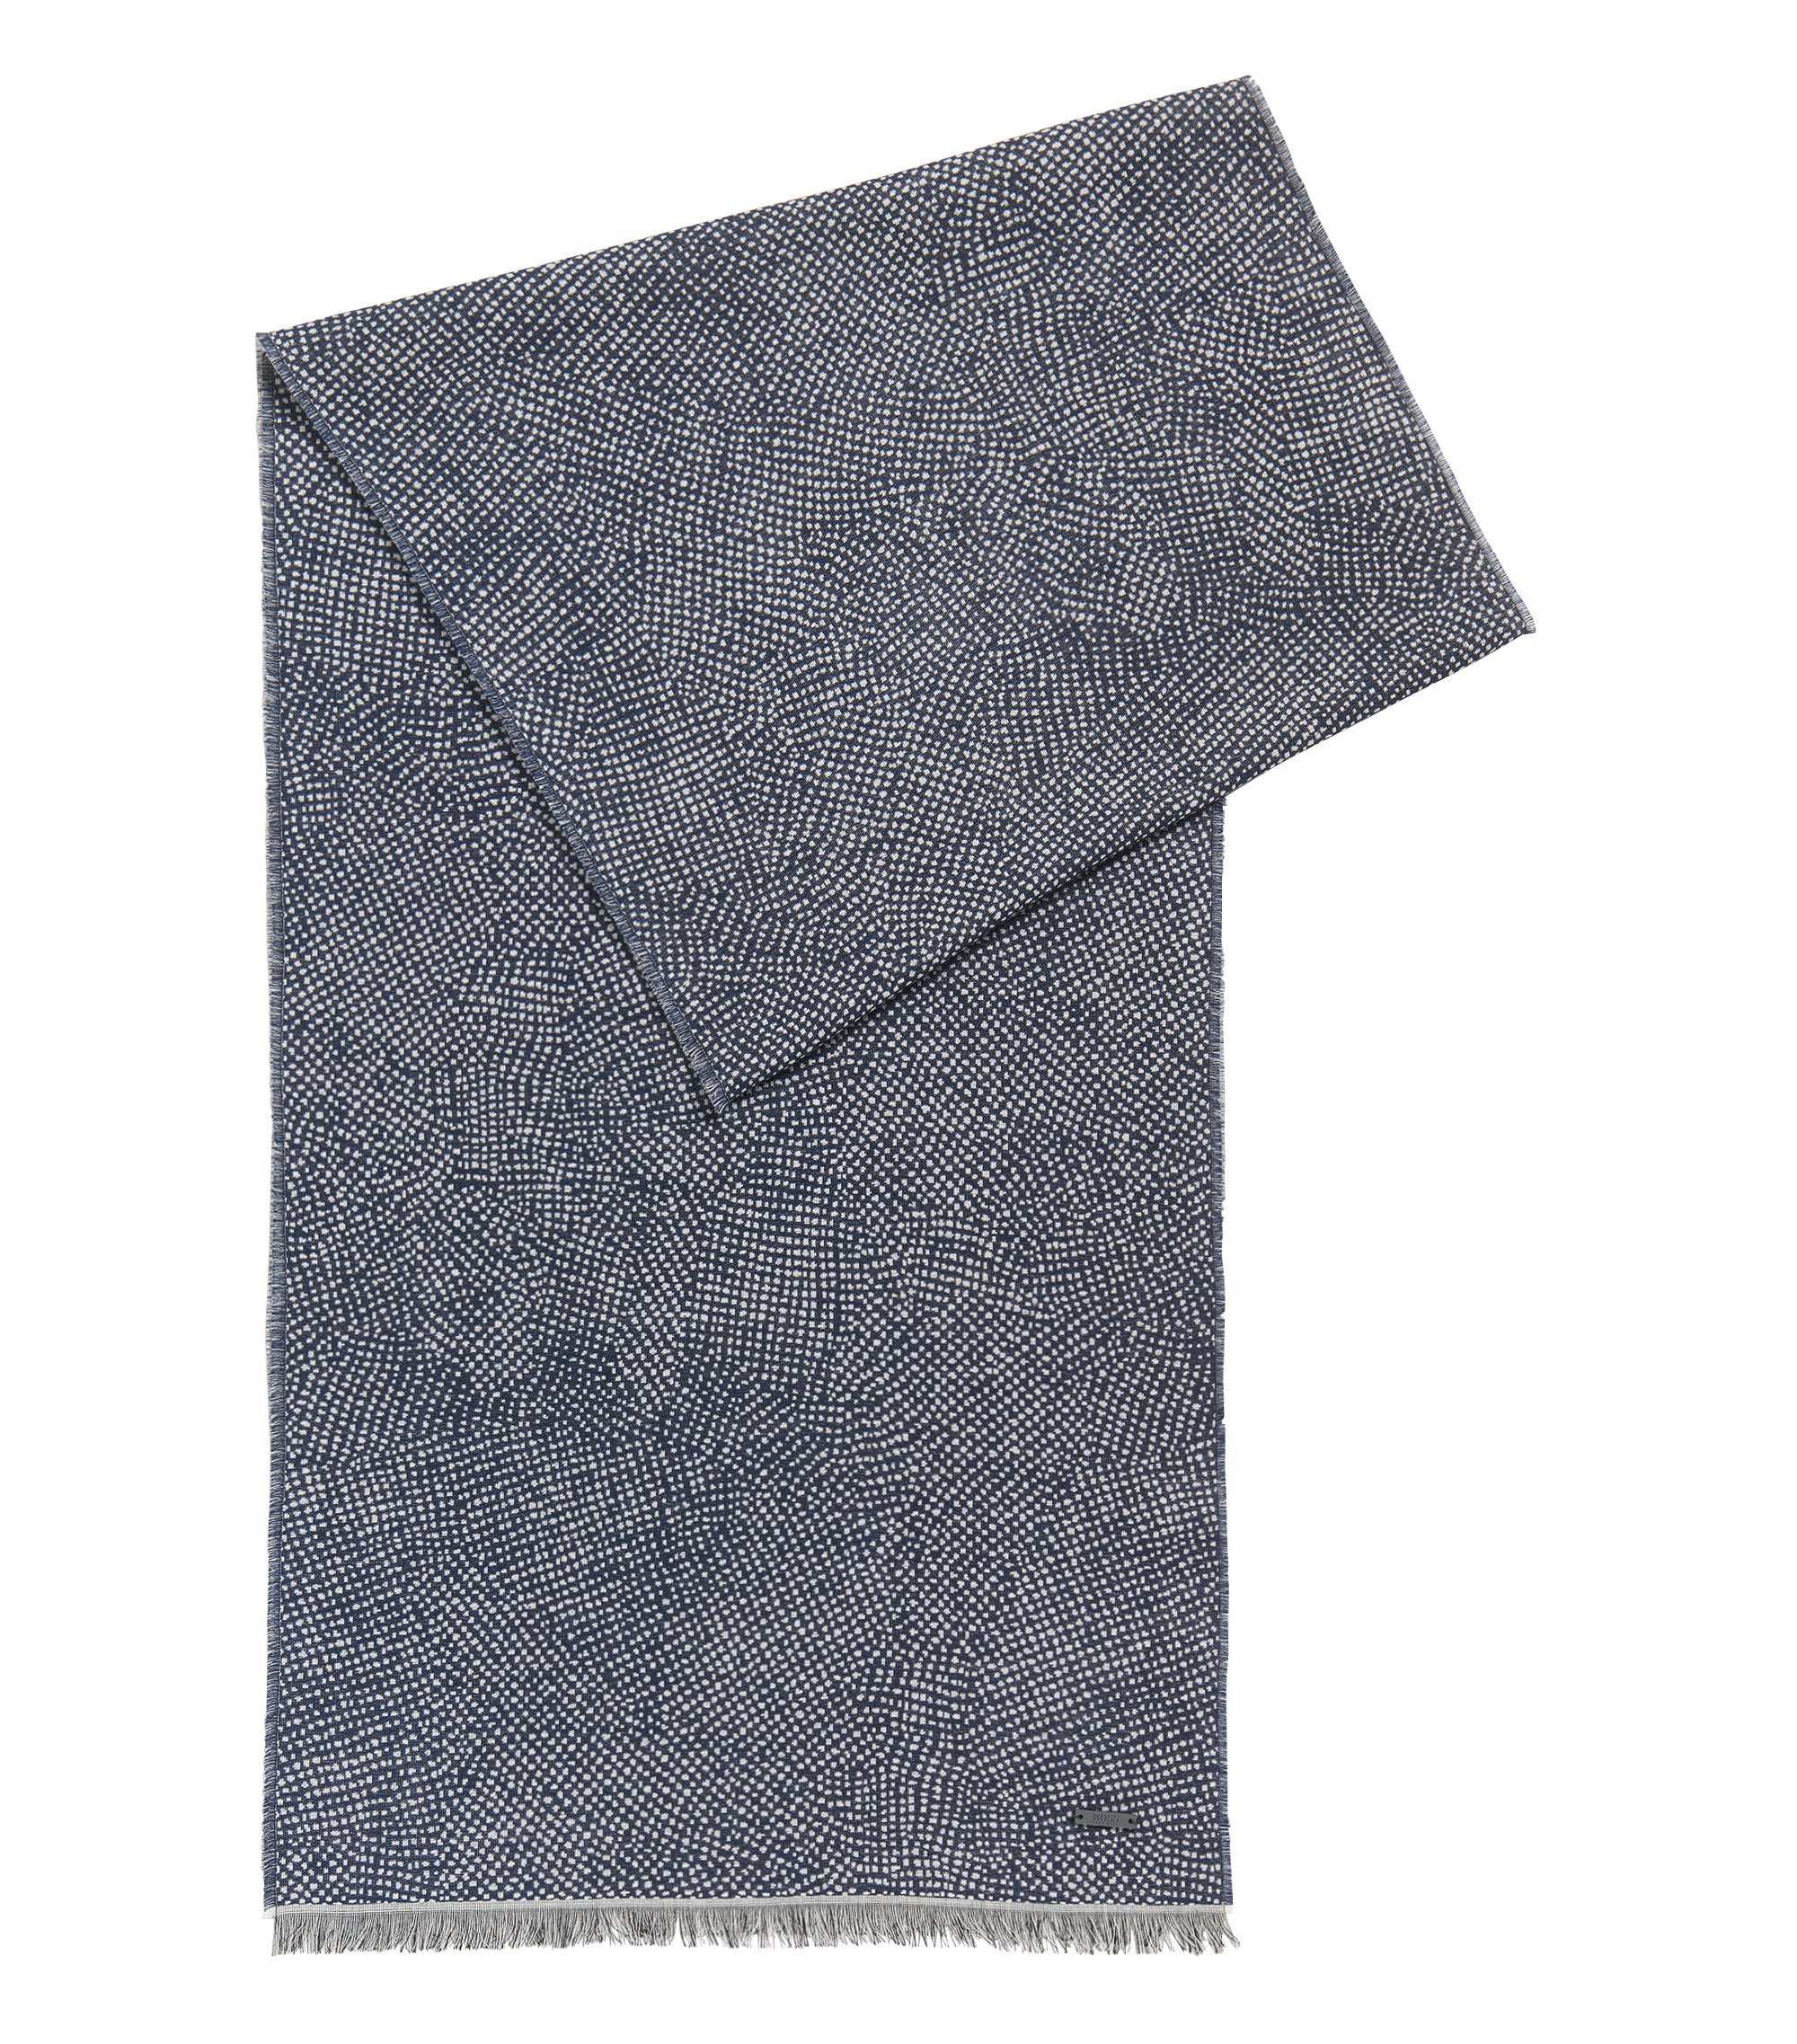 Dotted Viscose Blend Scarf | Caionic, Dark Blue